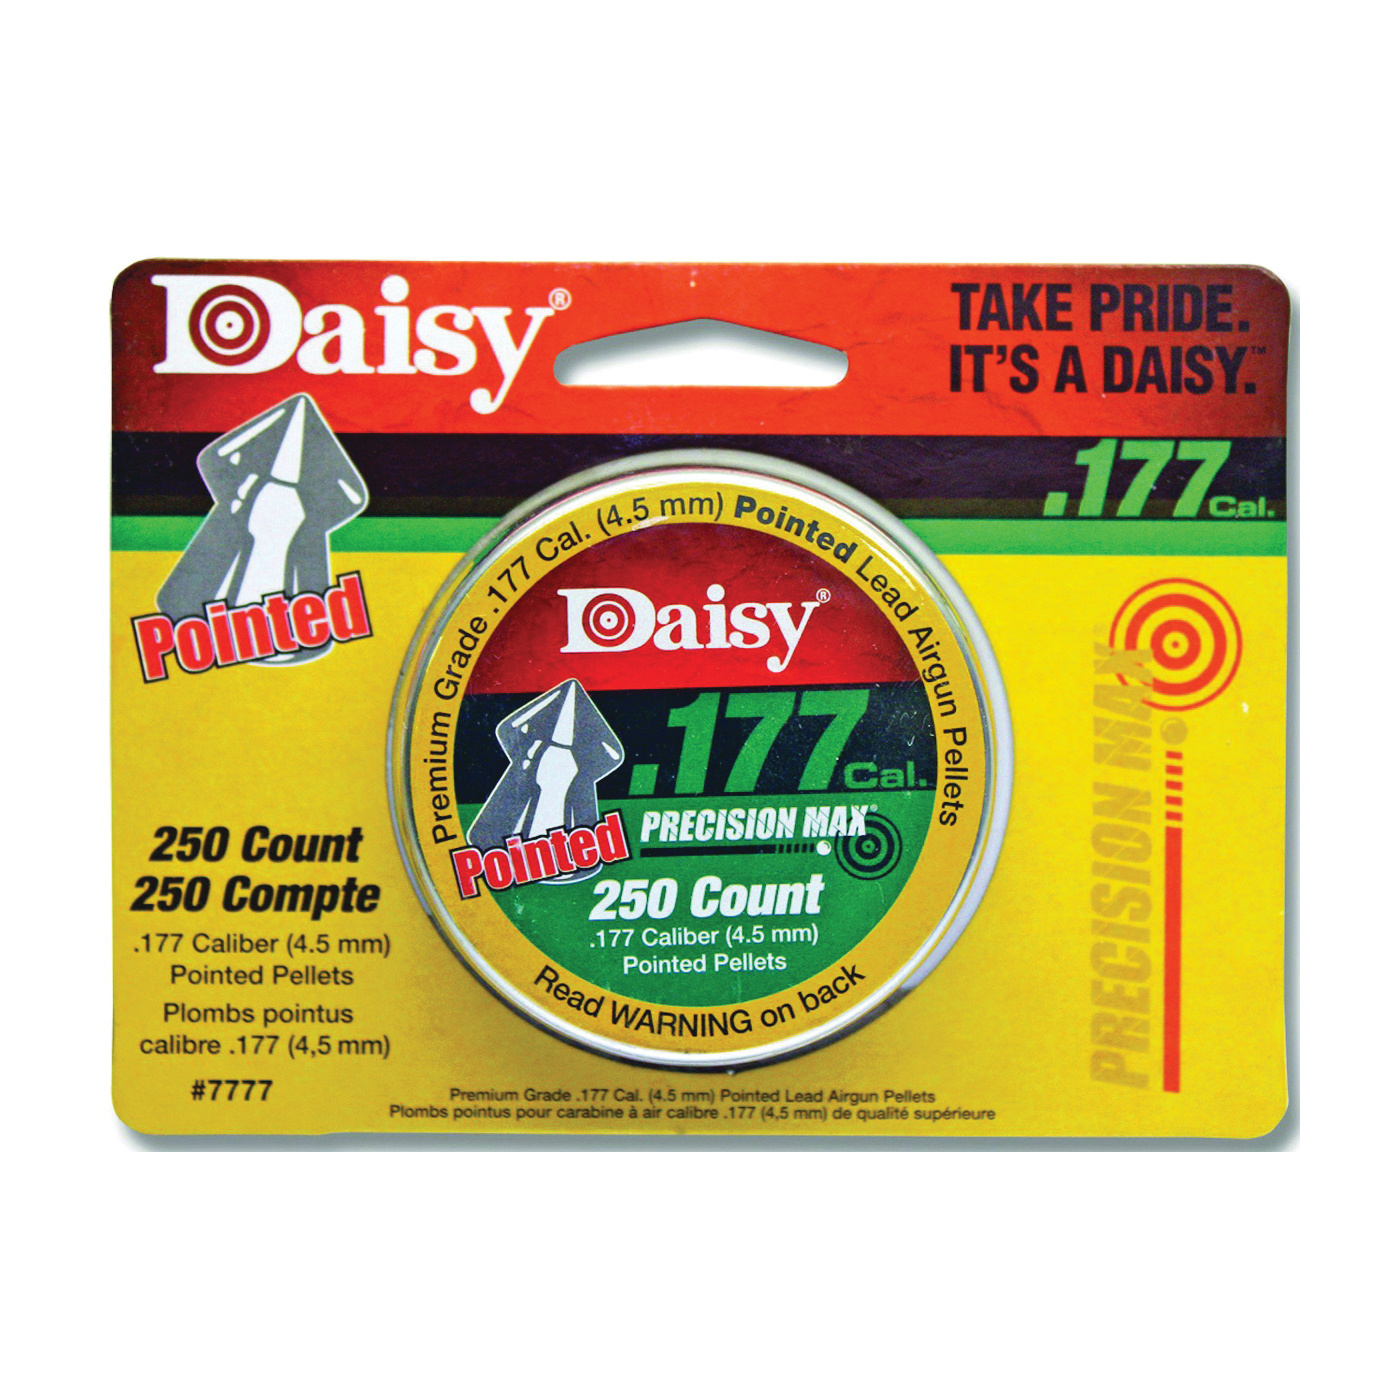 Daisy 177 cal pointed pellet 250 ct.